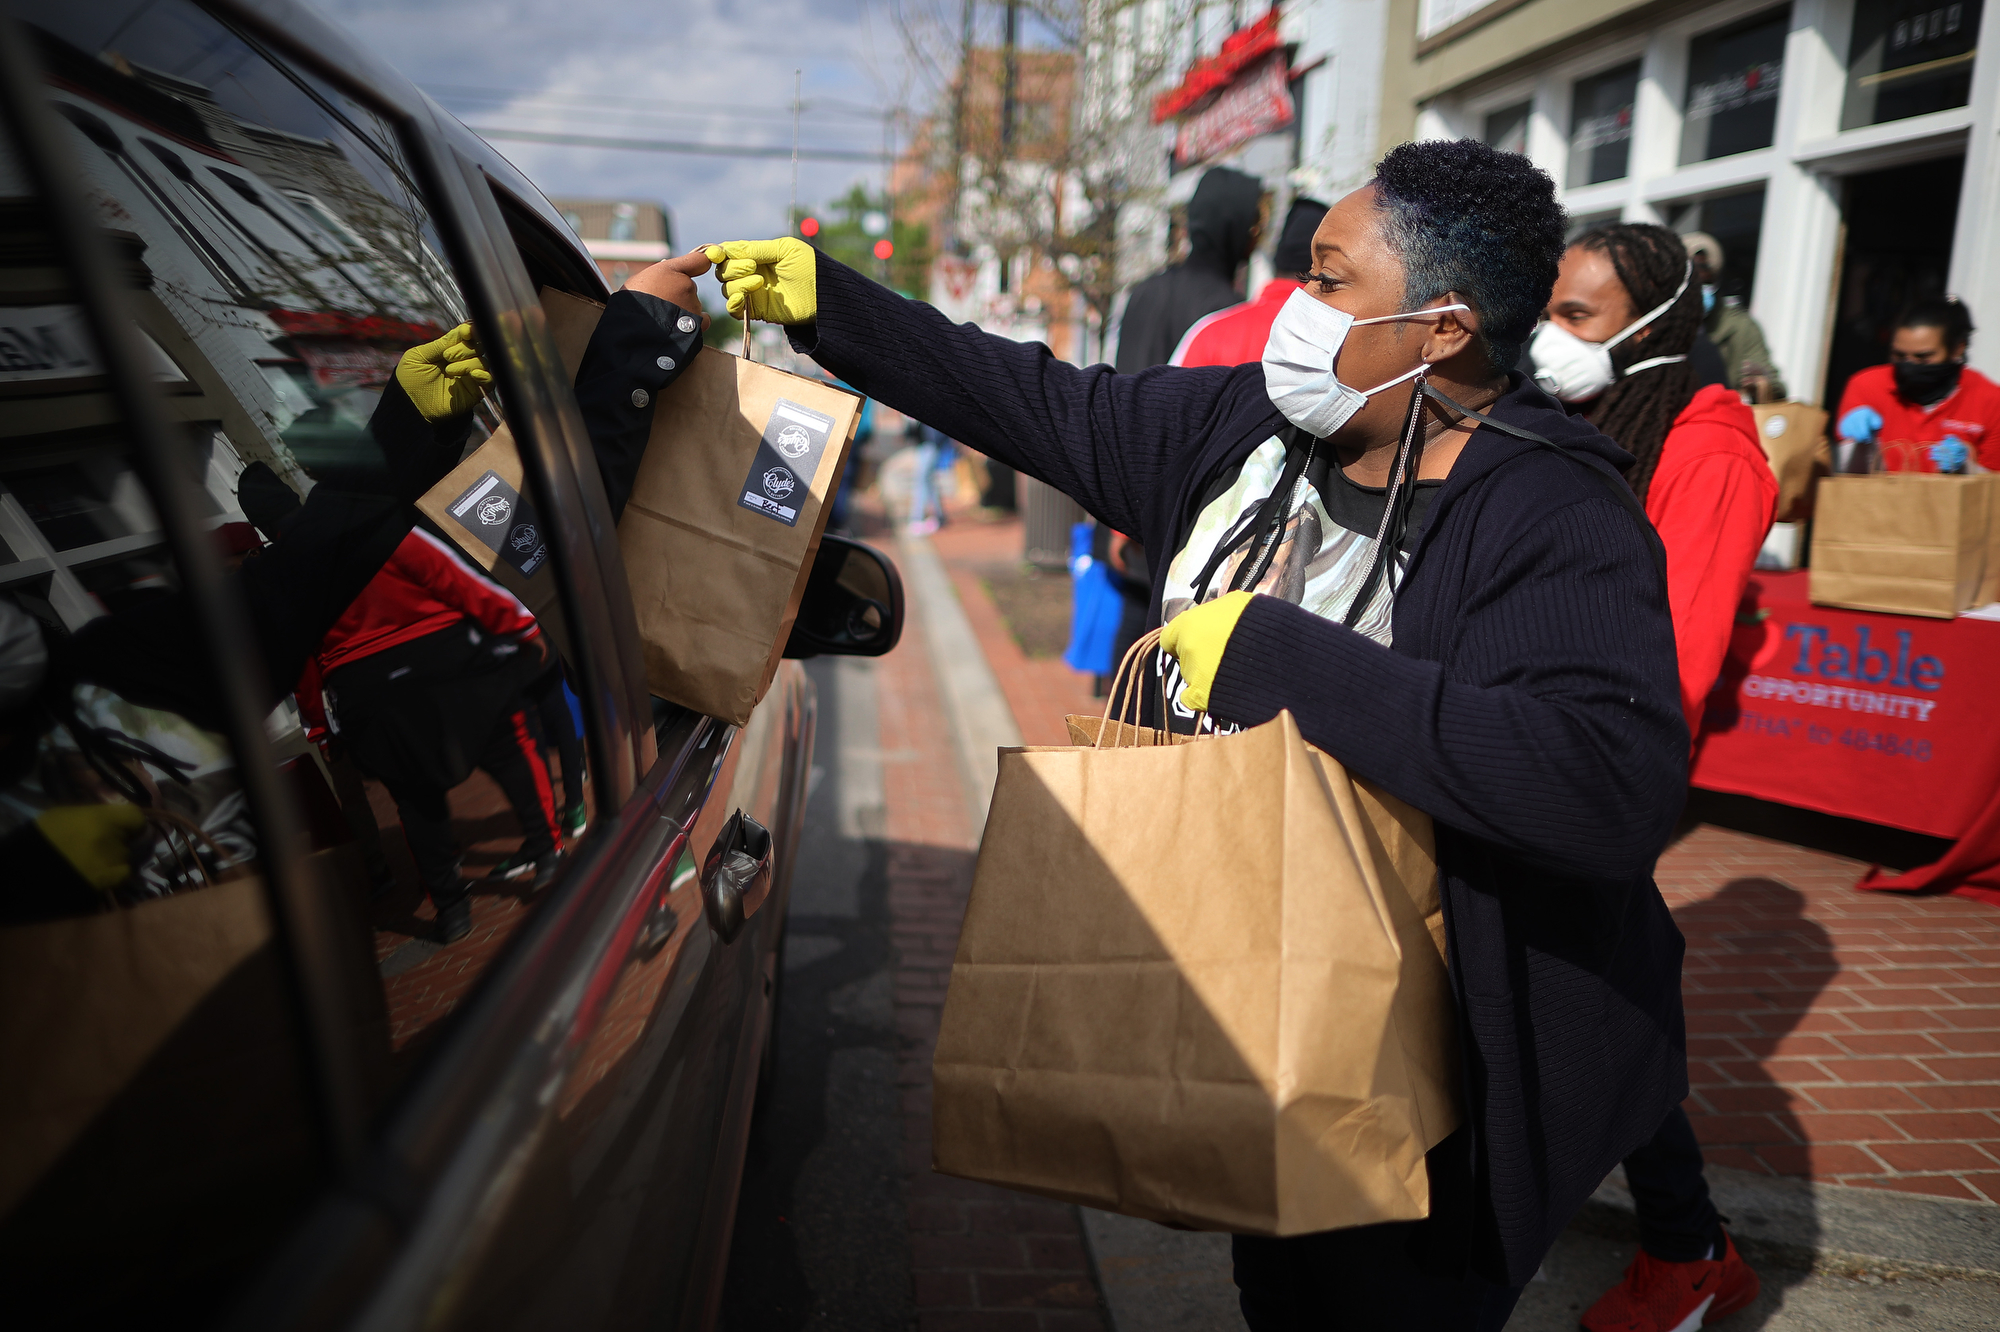 A volunteer at a nonprofit in Washington, D.C., distributes free hot meals during the COVID-19 pandemic.